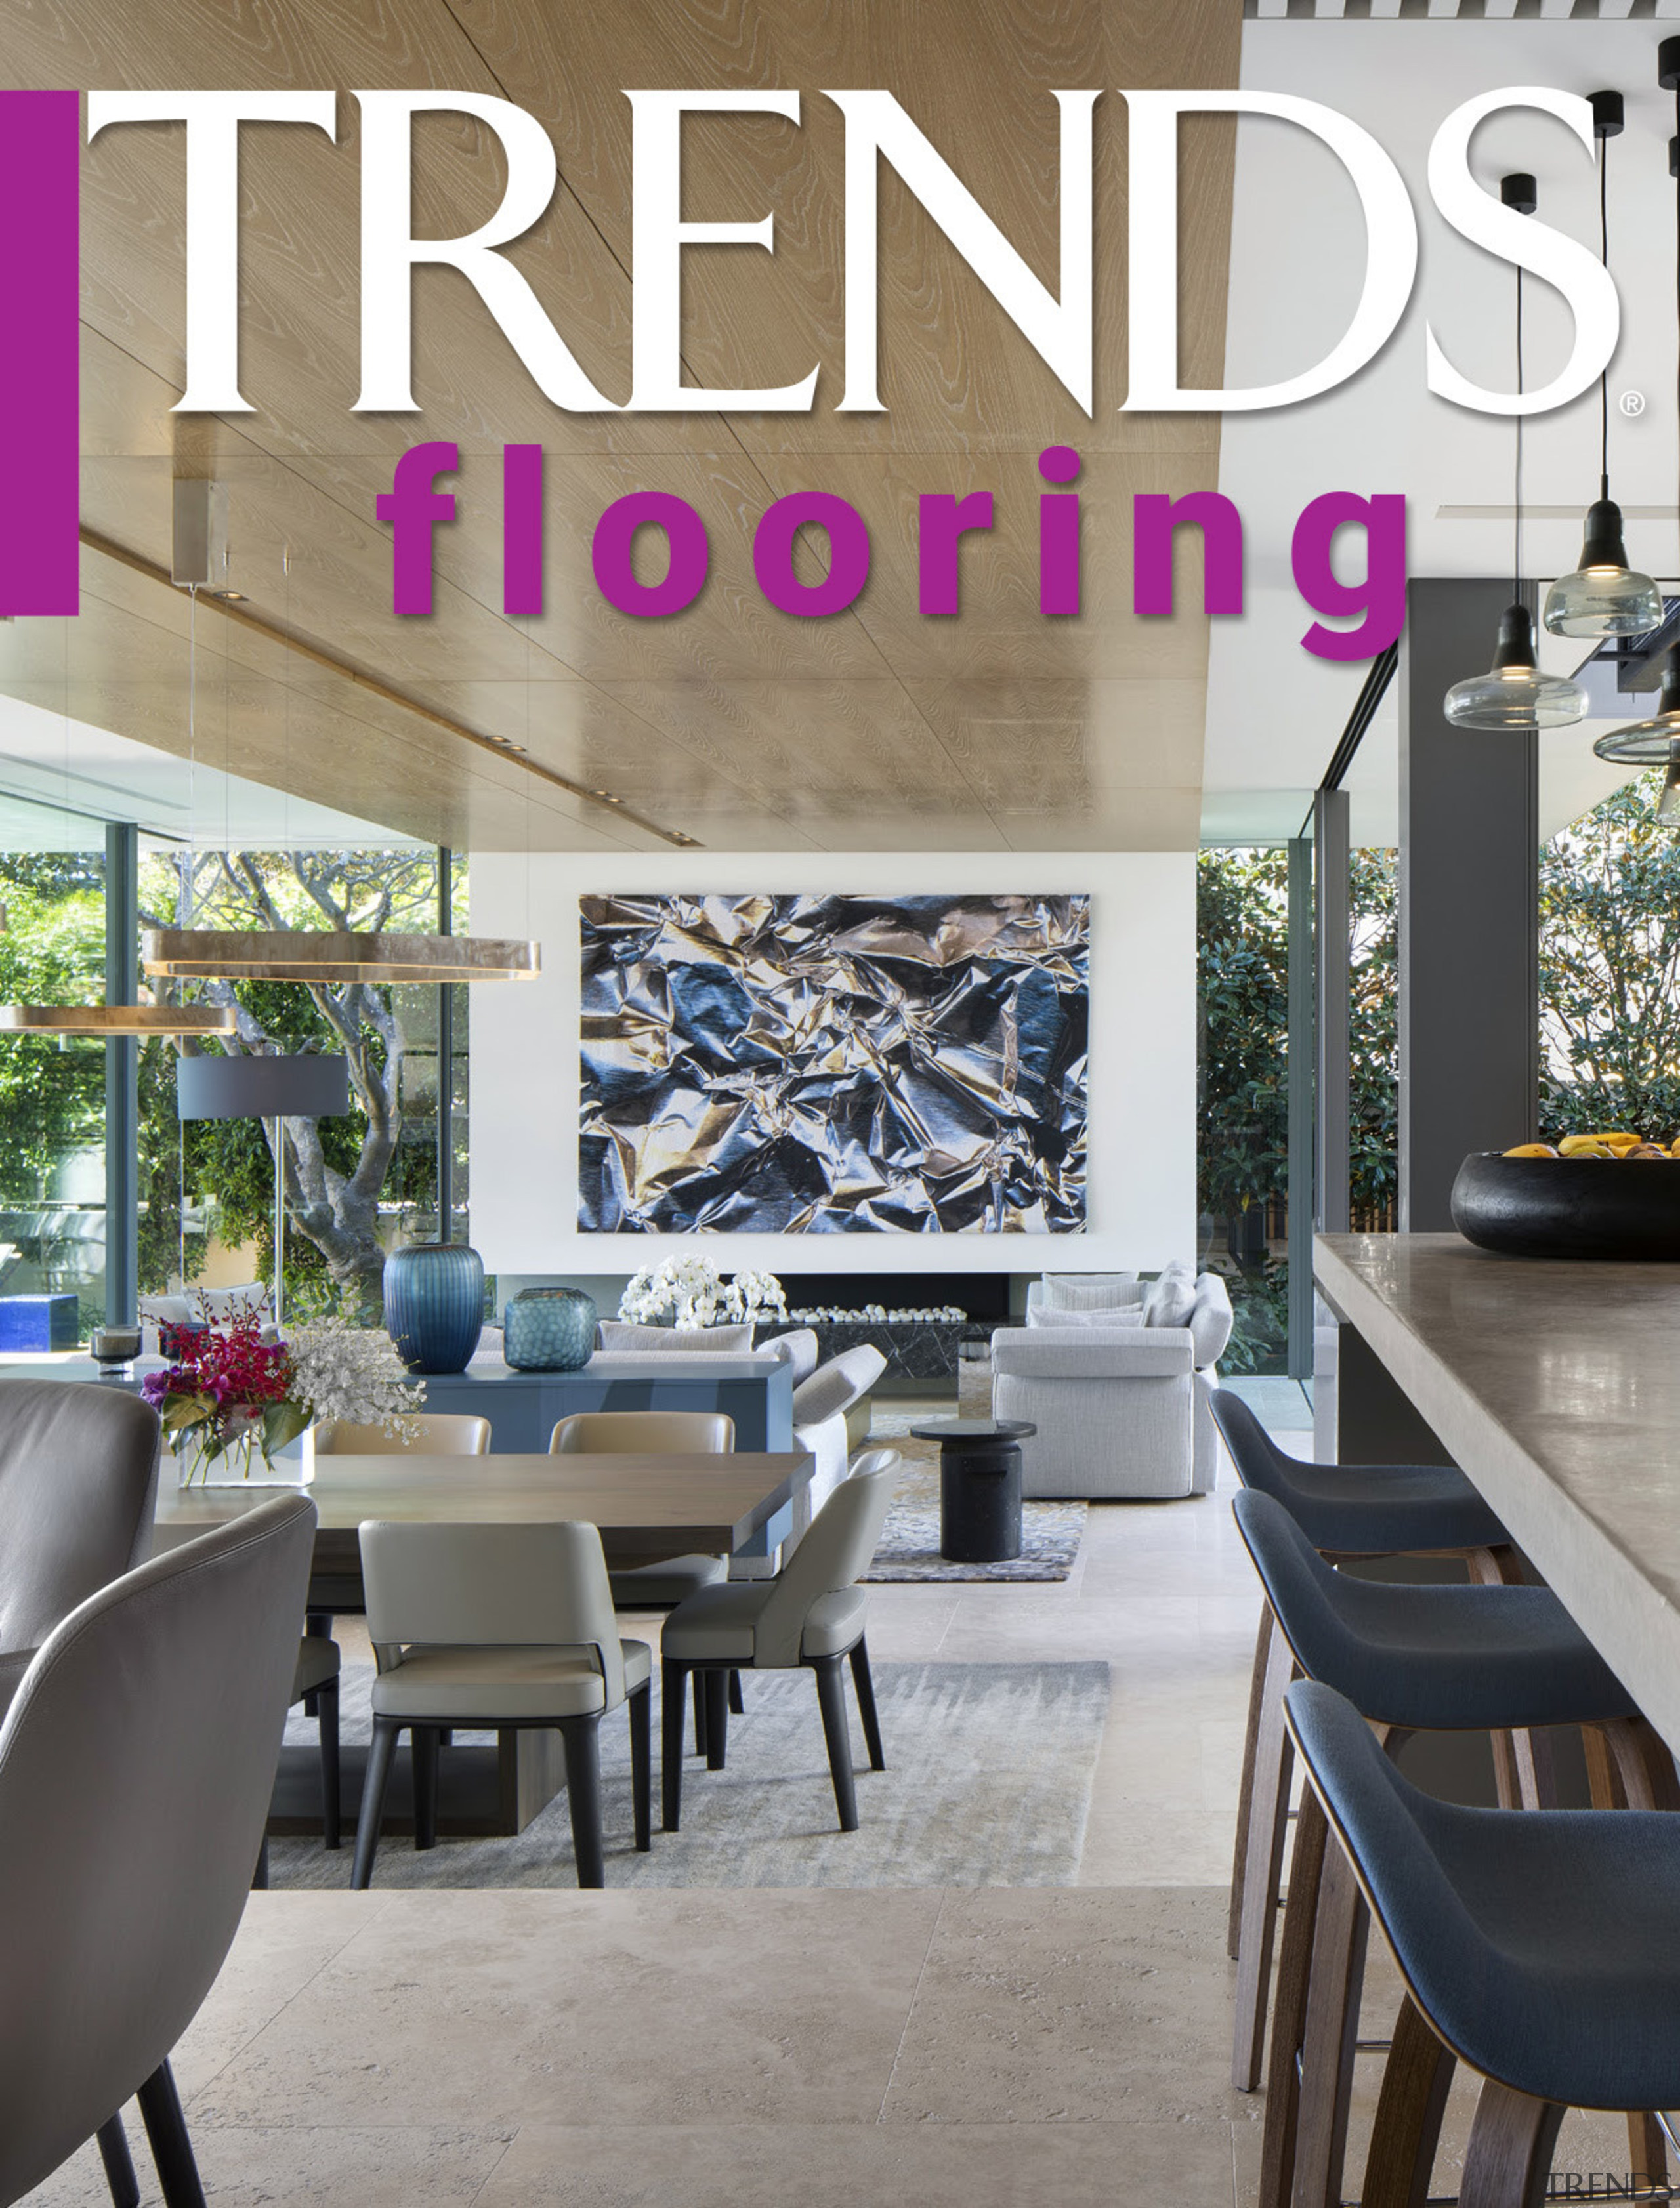 Kitchen flooring SIP - architecture   building   architecture, building, ceiling, chair, design, dining room, floor, flooring, furniture, home, house, interior design, living room, property, real estate, room, table, wall, gray